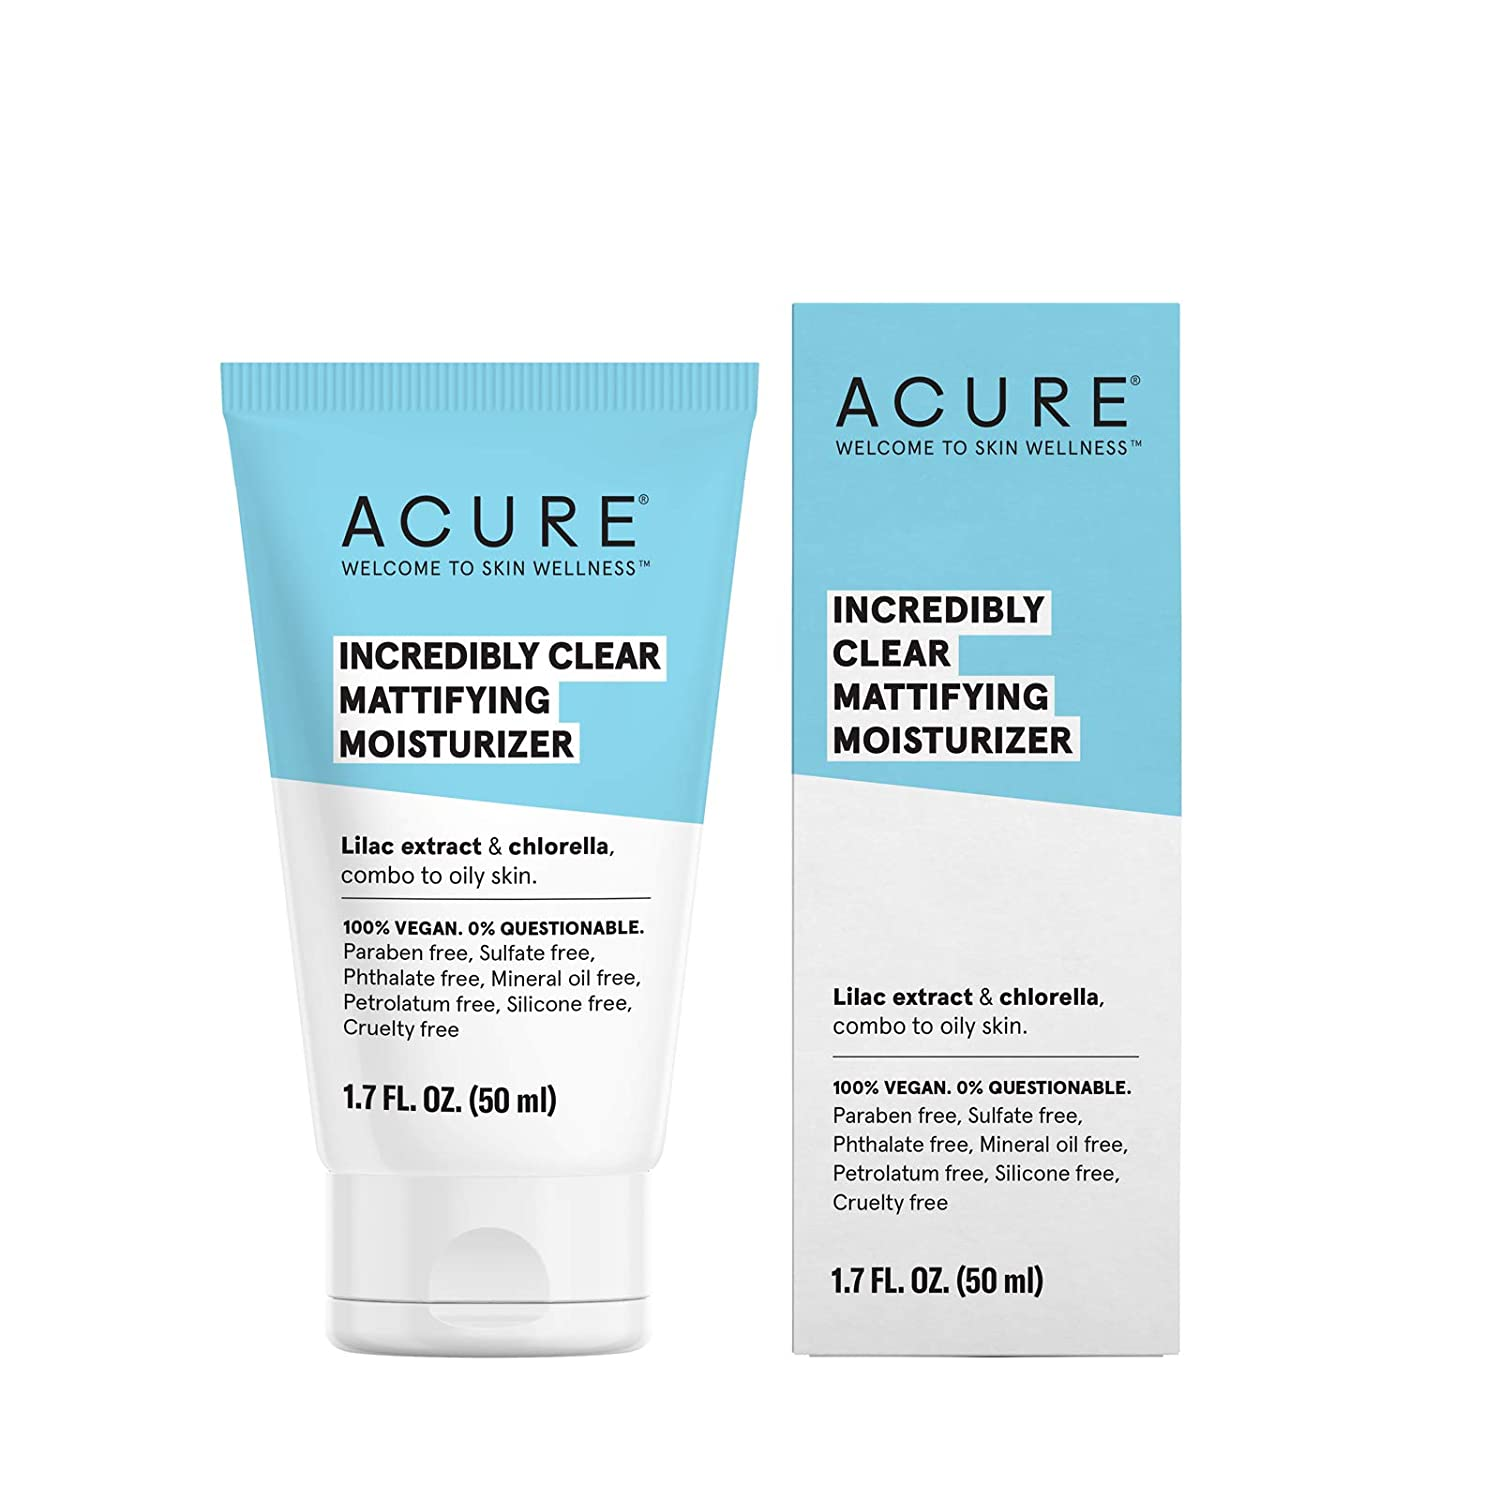 ACURE Incredibly Clear Mattifying Moisturizer, 1.7 Fl. Oz. (Packaging May Vary) ET1009